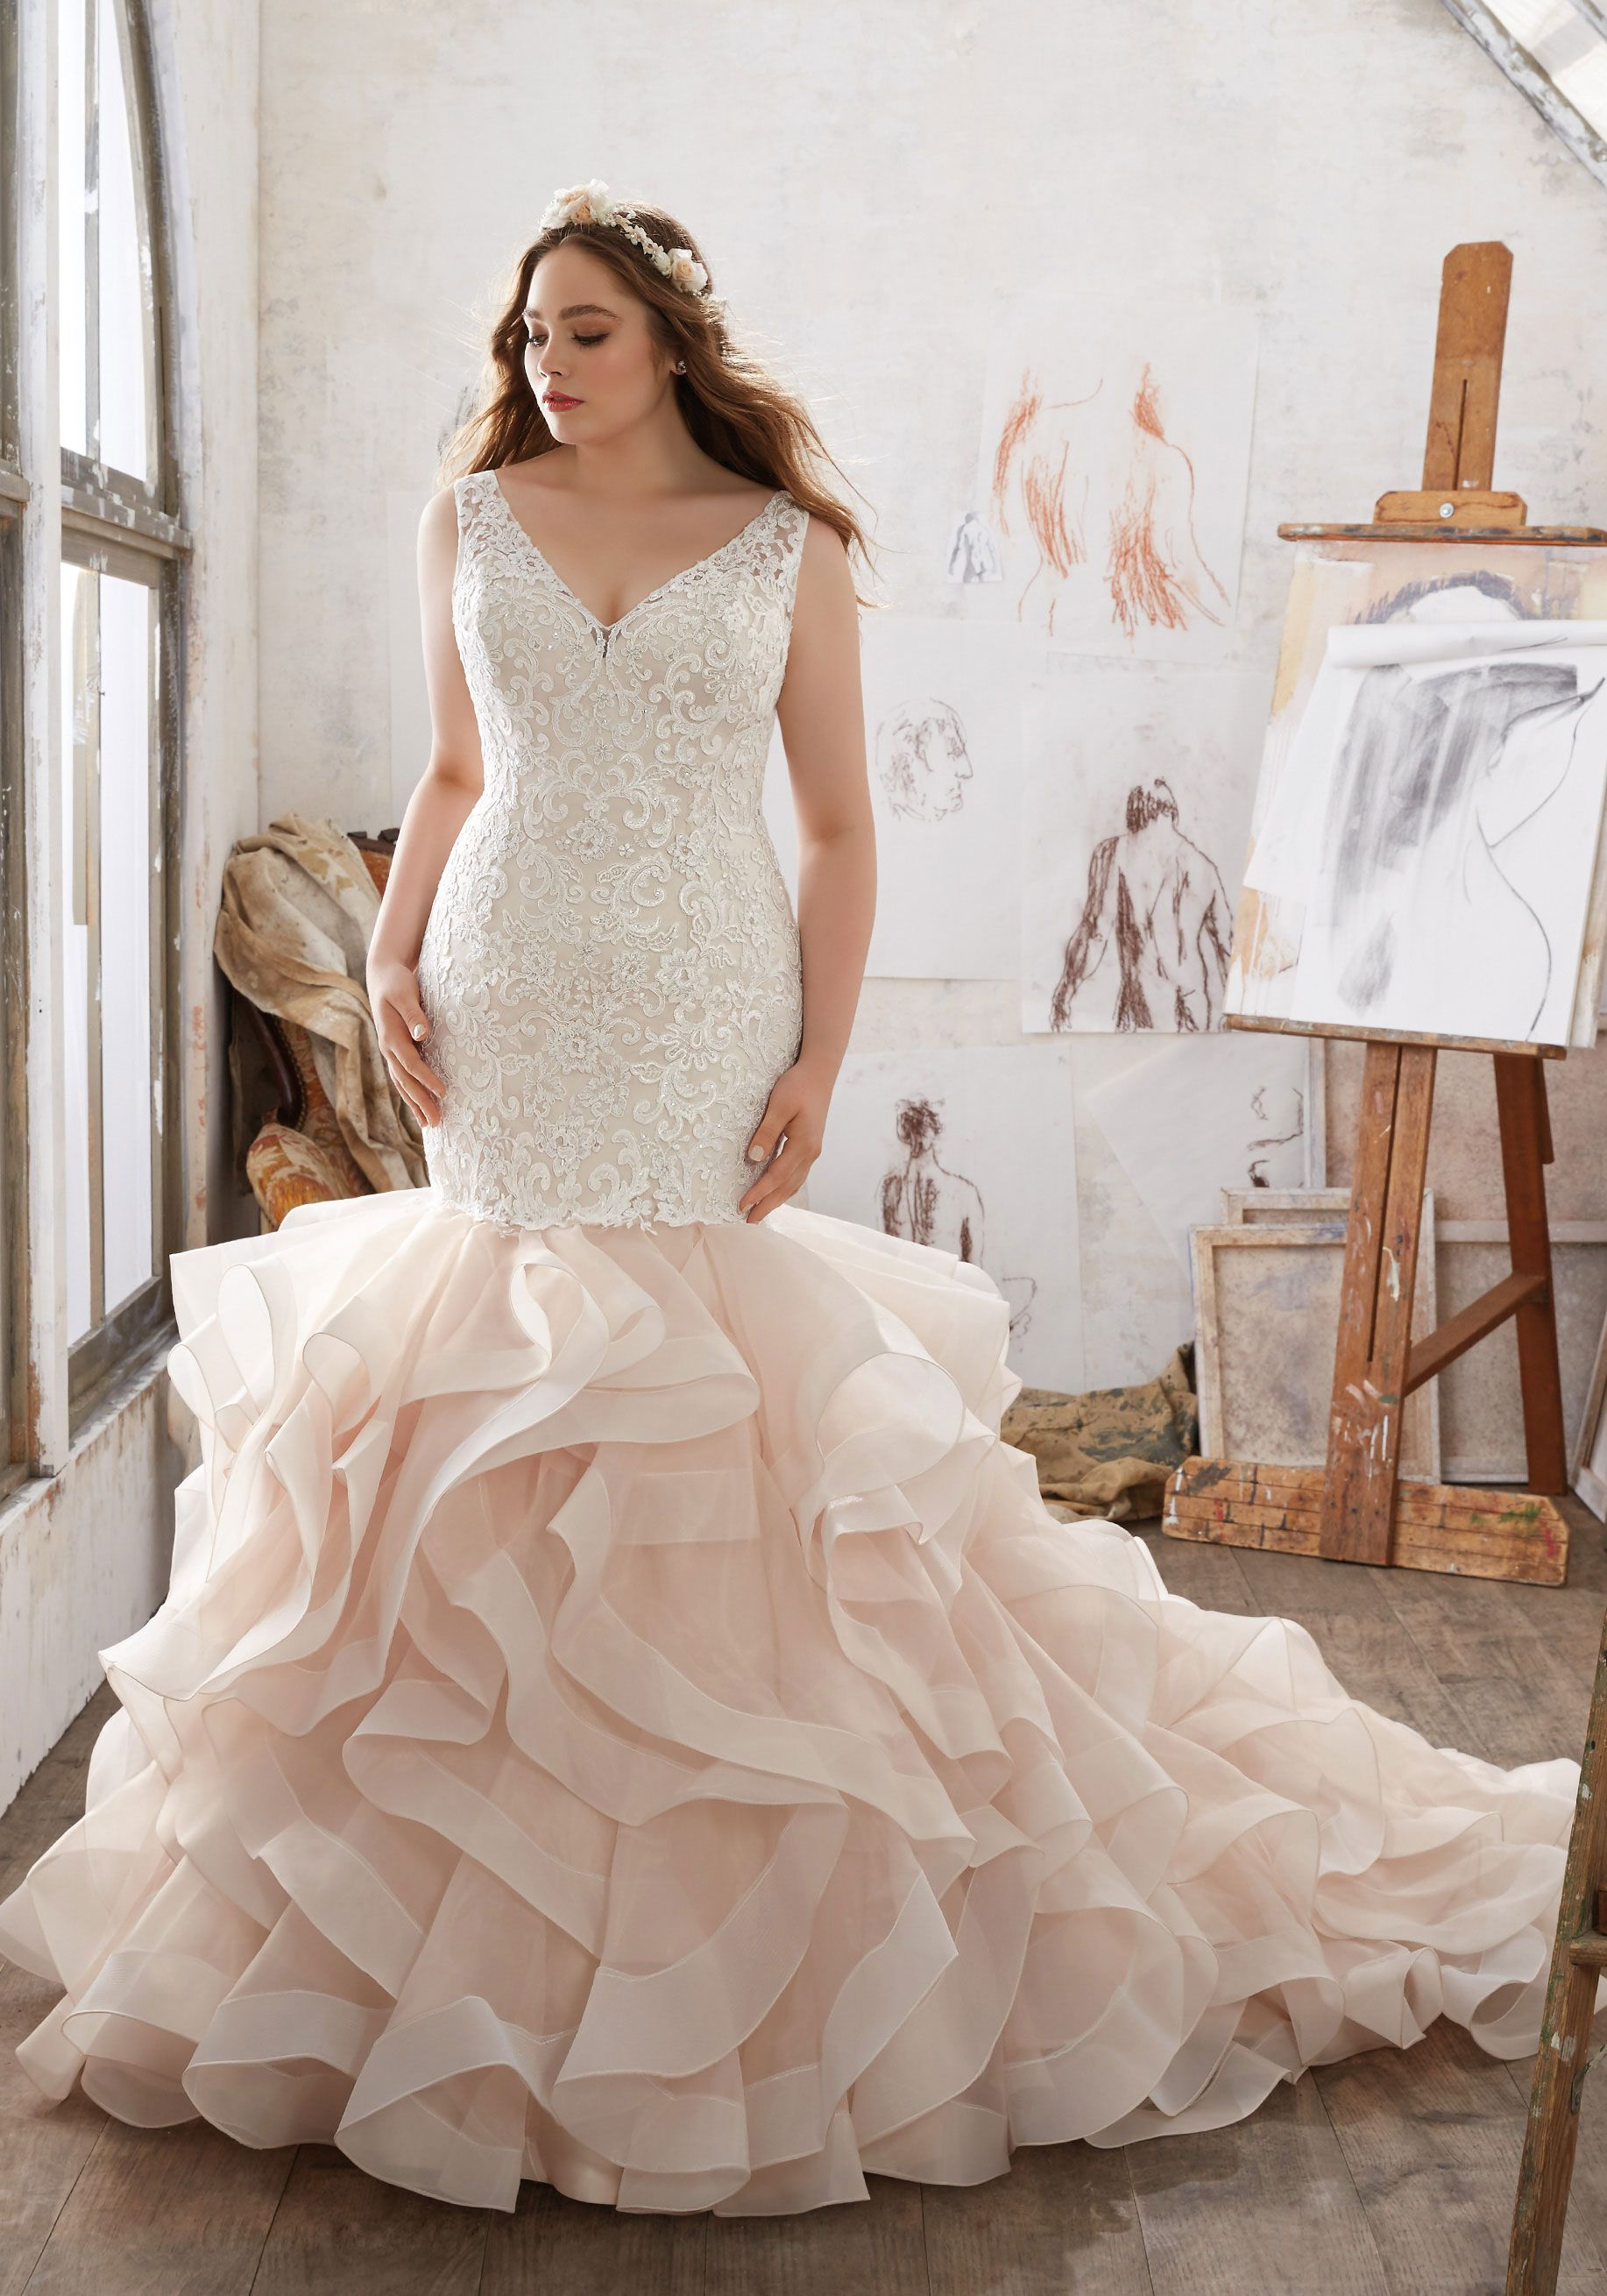 Designer wedding dresses and bridal gowns by morilee beautiful designer wedding dresses and bridal gowns by morilee beautiful plus size lace mermaid wedding dress ombrellifo Images